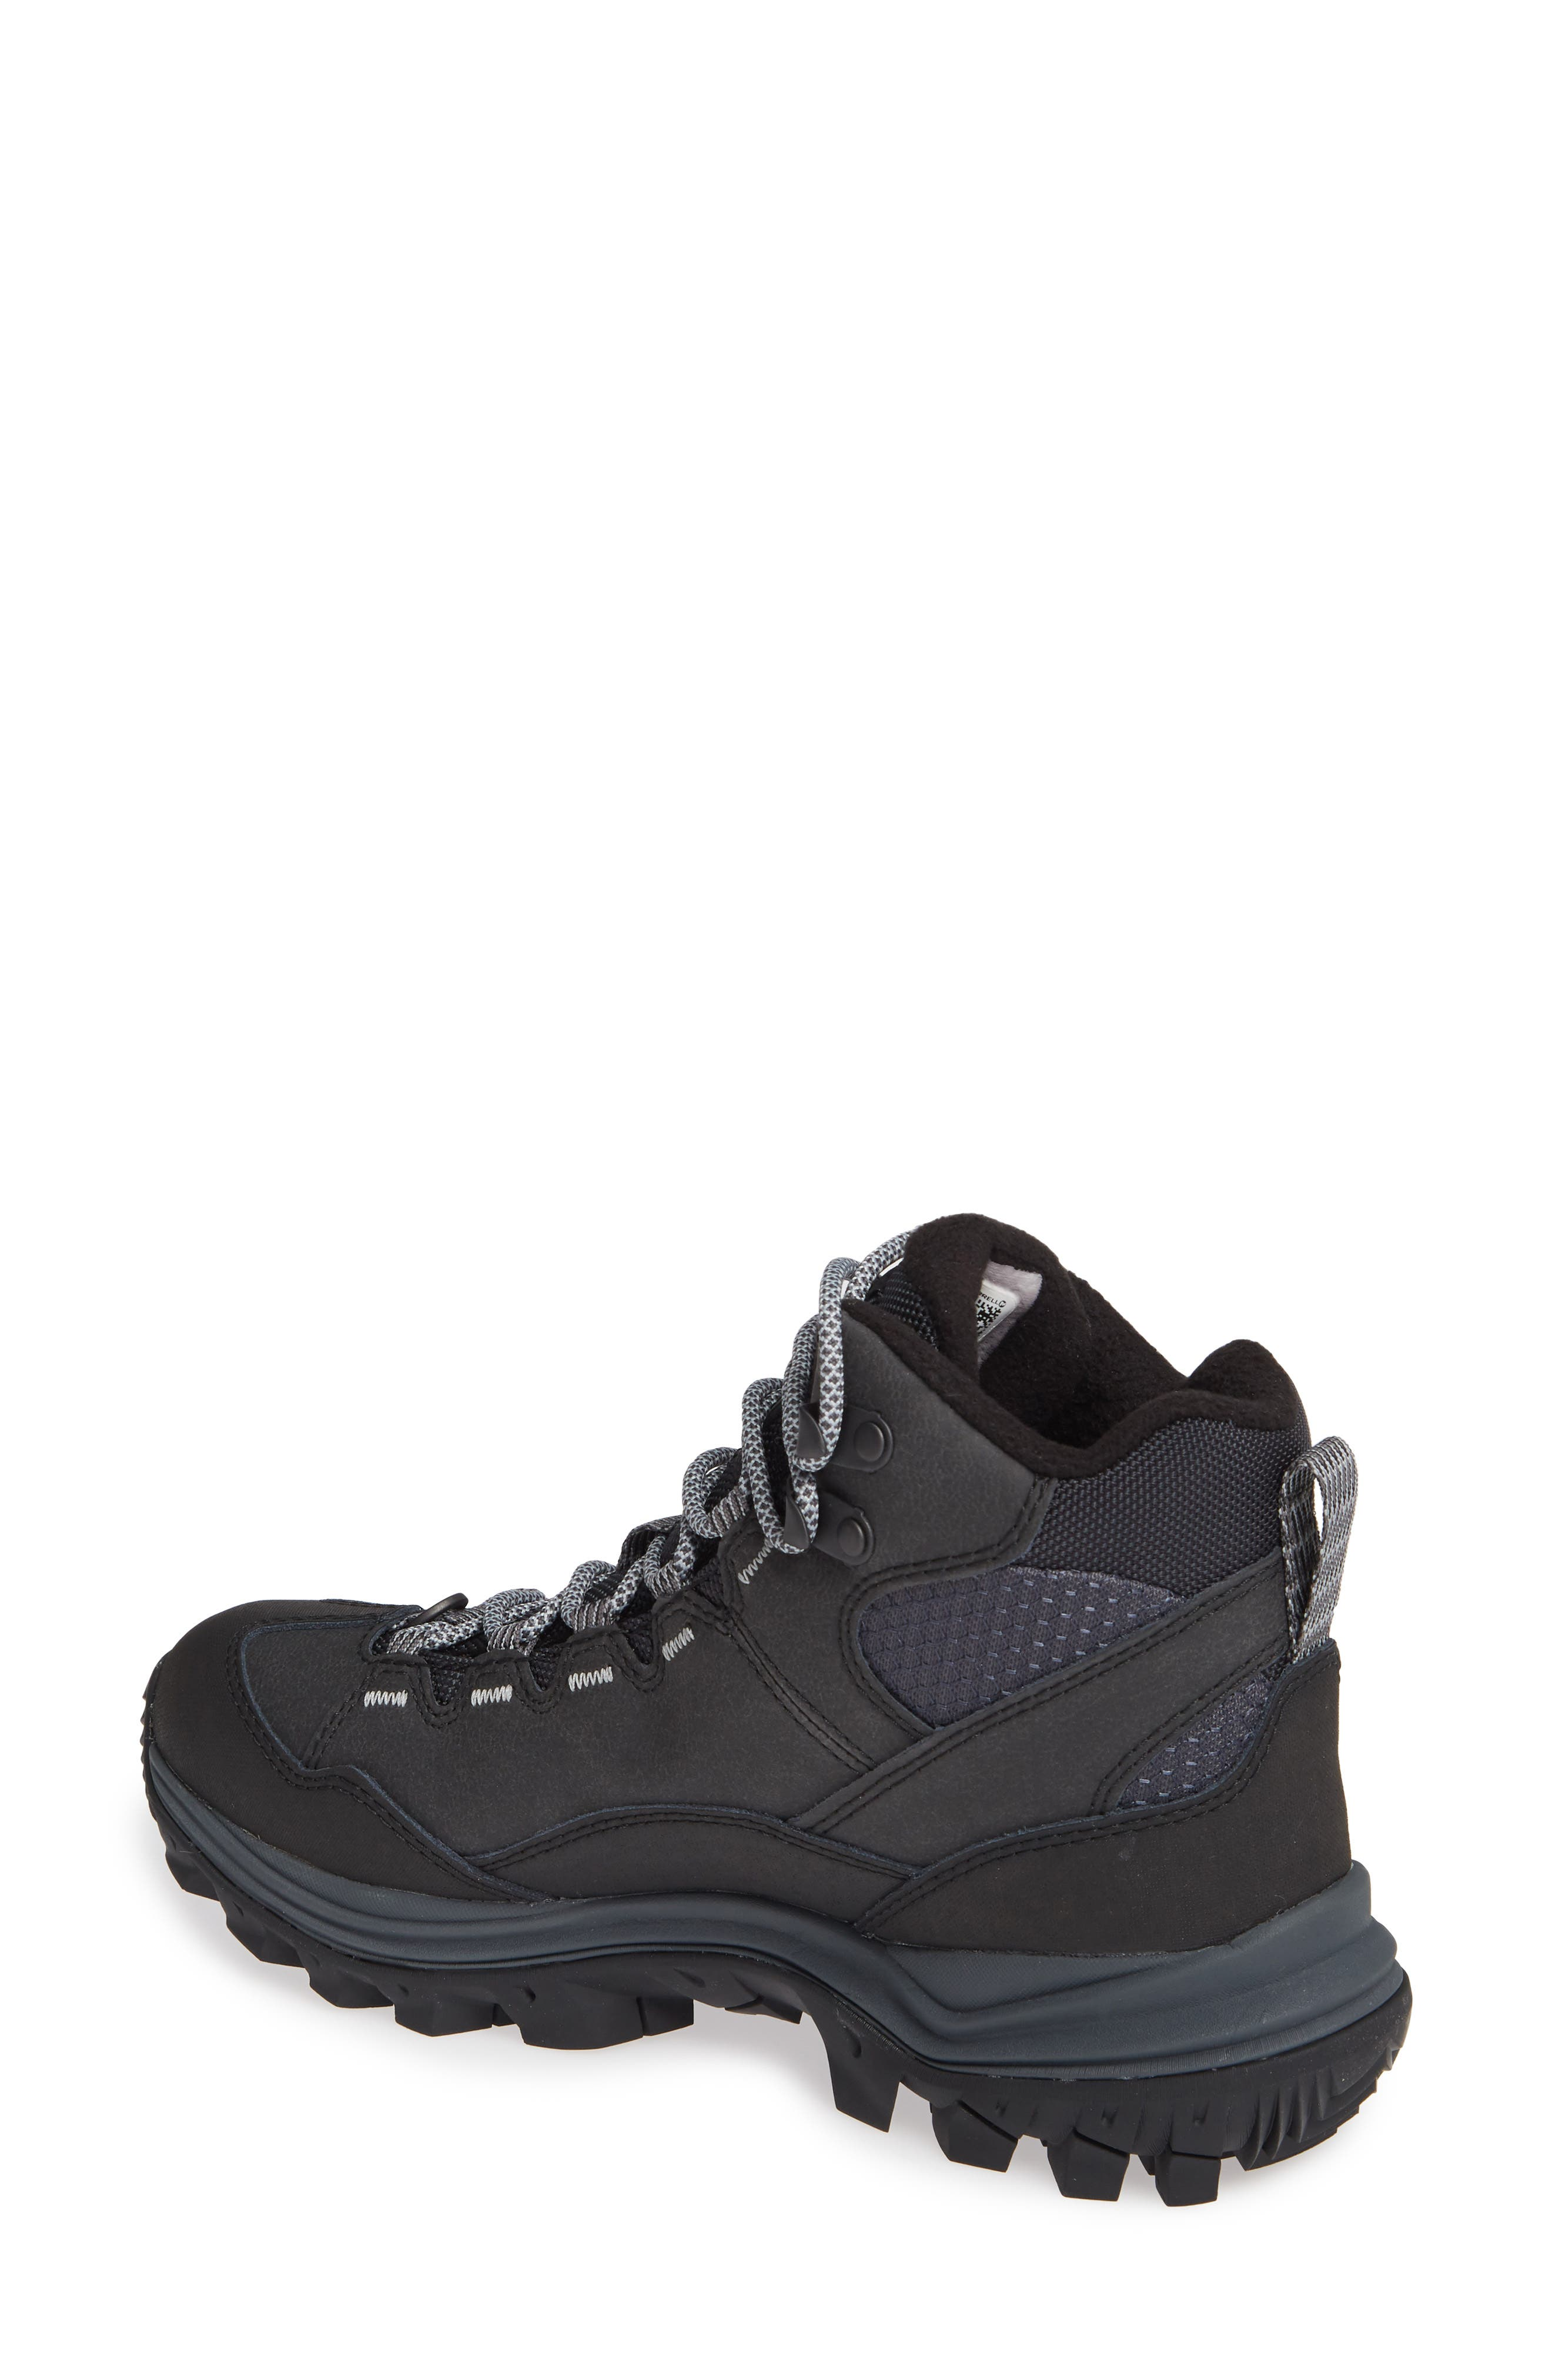 Thermo Chill Waterproof Snow Boot,                             Alternate thumbnail 2, color,                             BLACK LEATHER